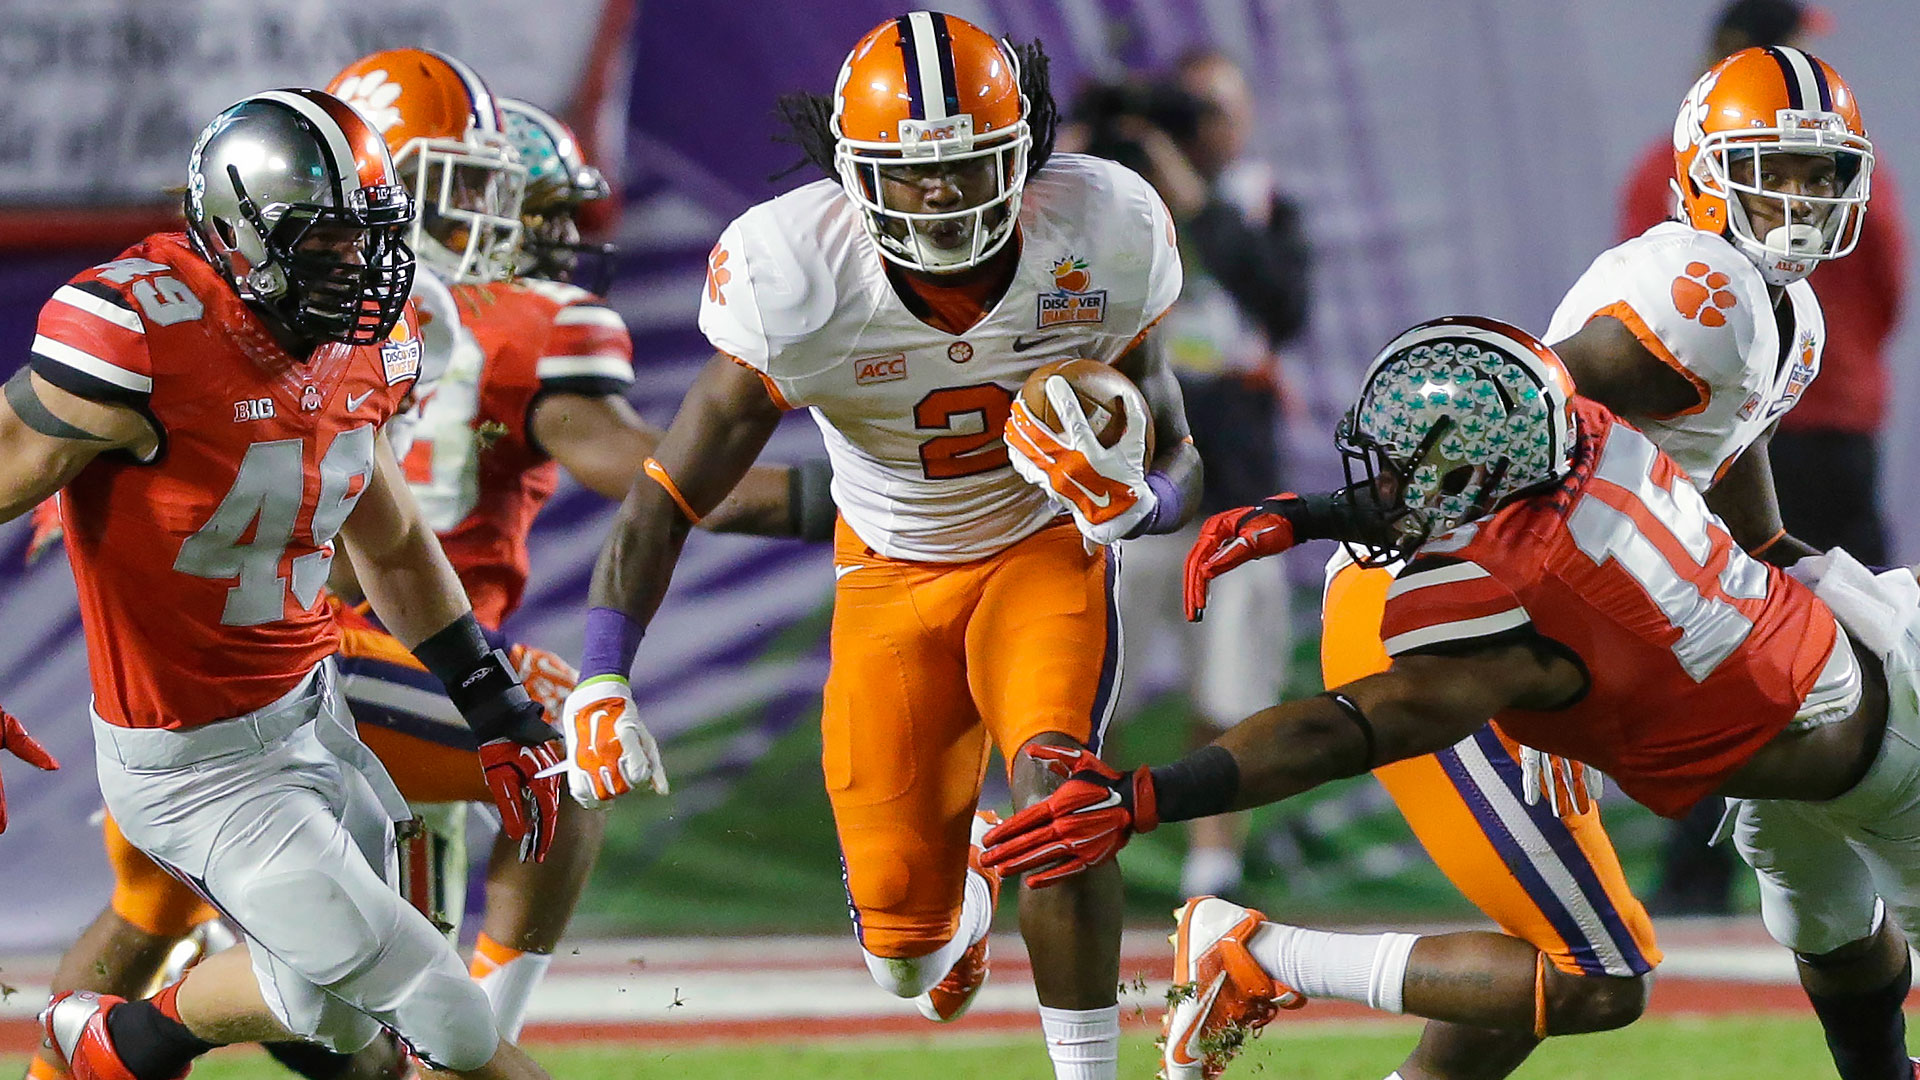 2014 NFL Draft -- Bills select Sammy Watkins with No. 4 pick